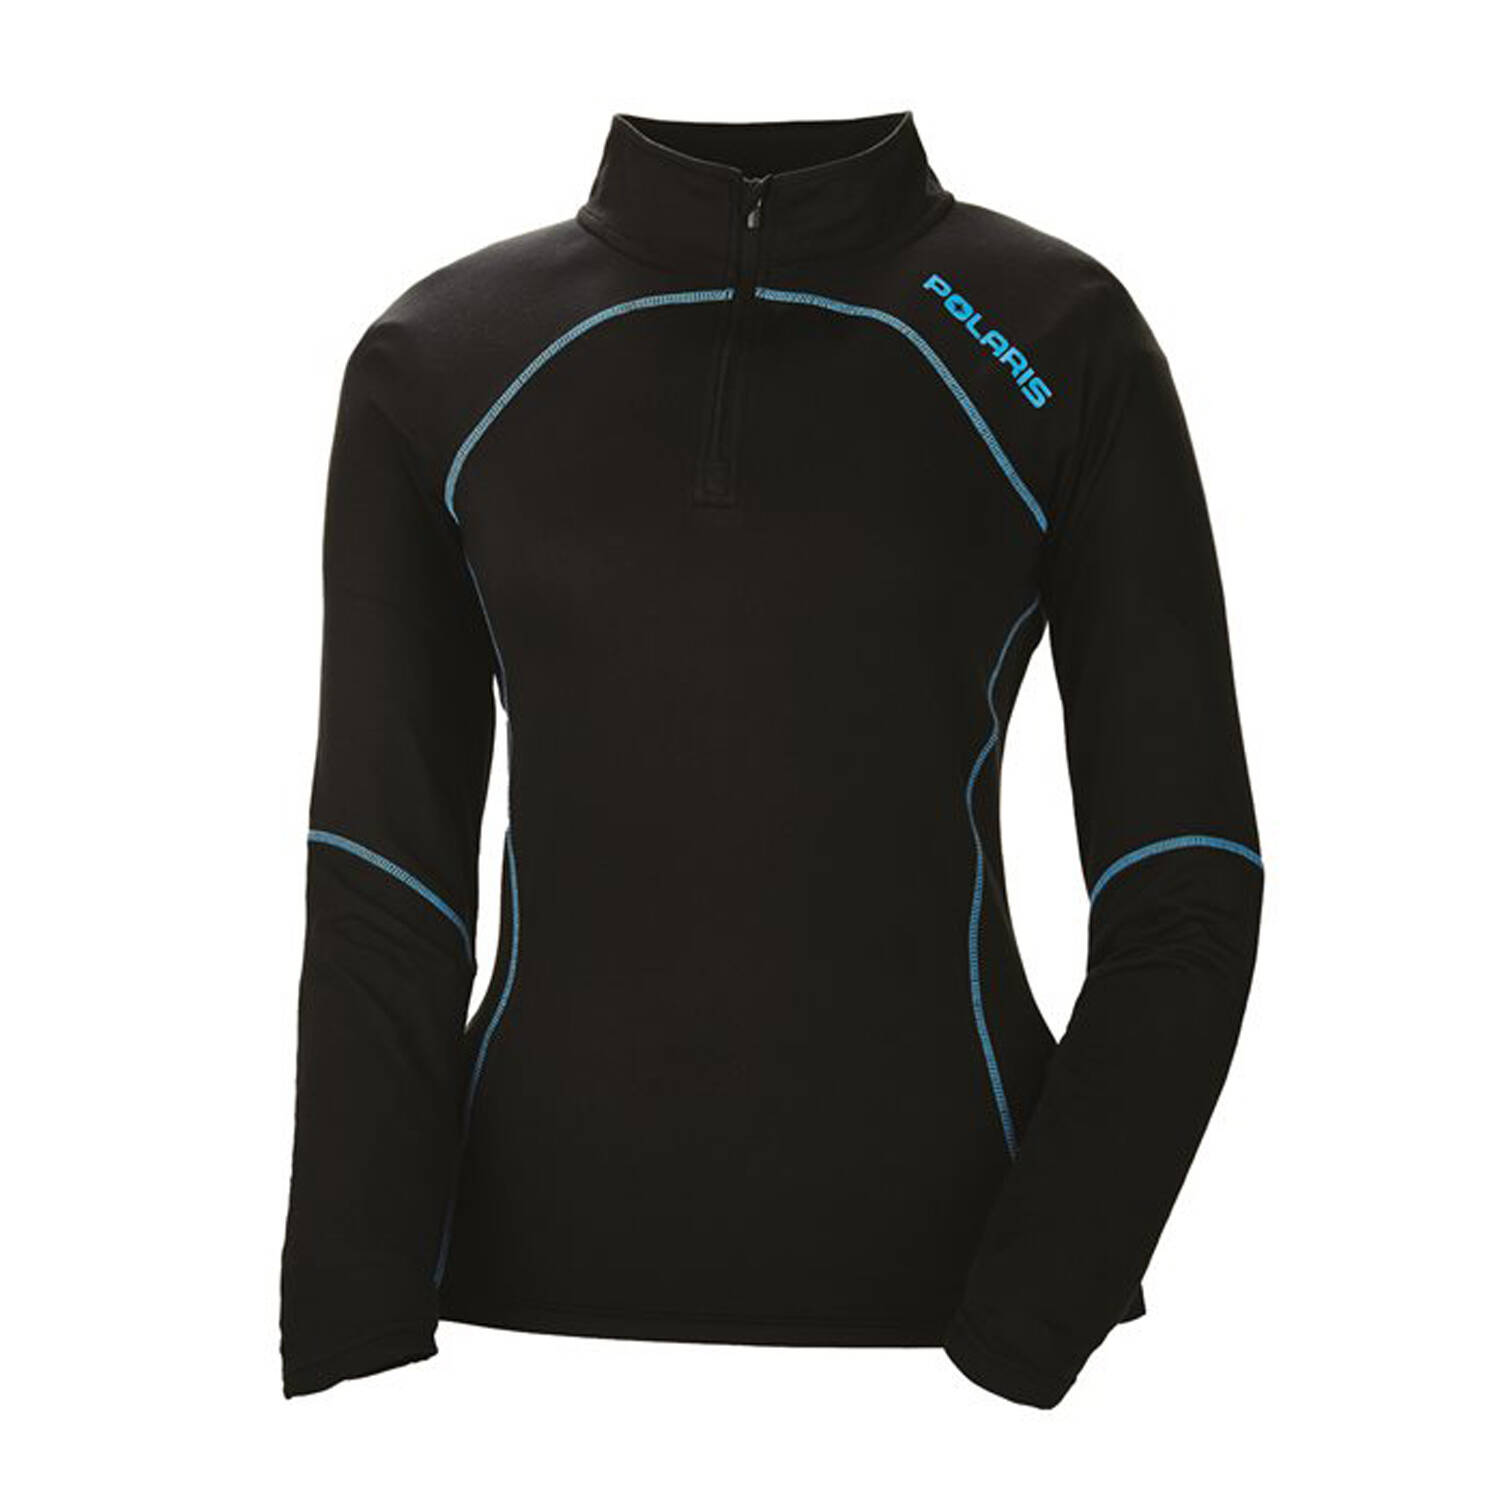 Women's Long-Sleeve Quarter-Zip Pullover with Blue Polaris® Logo, Black